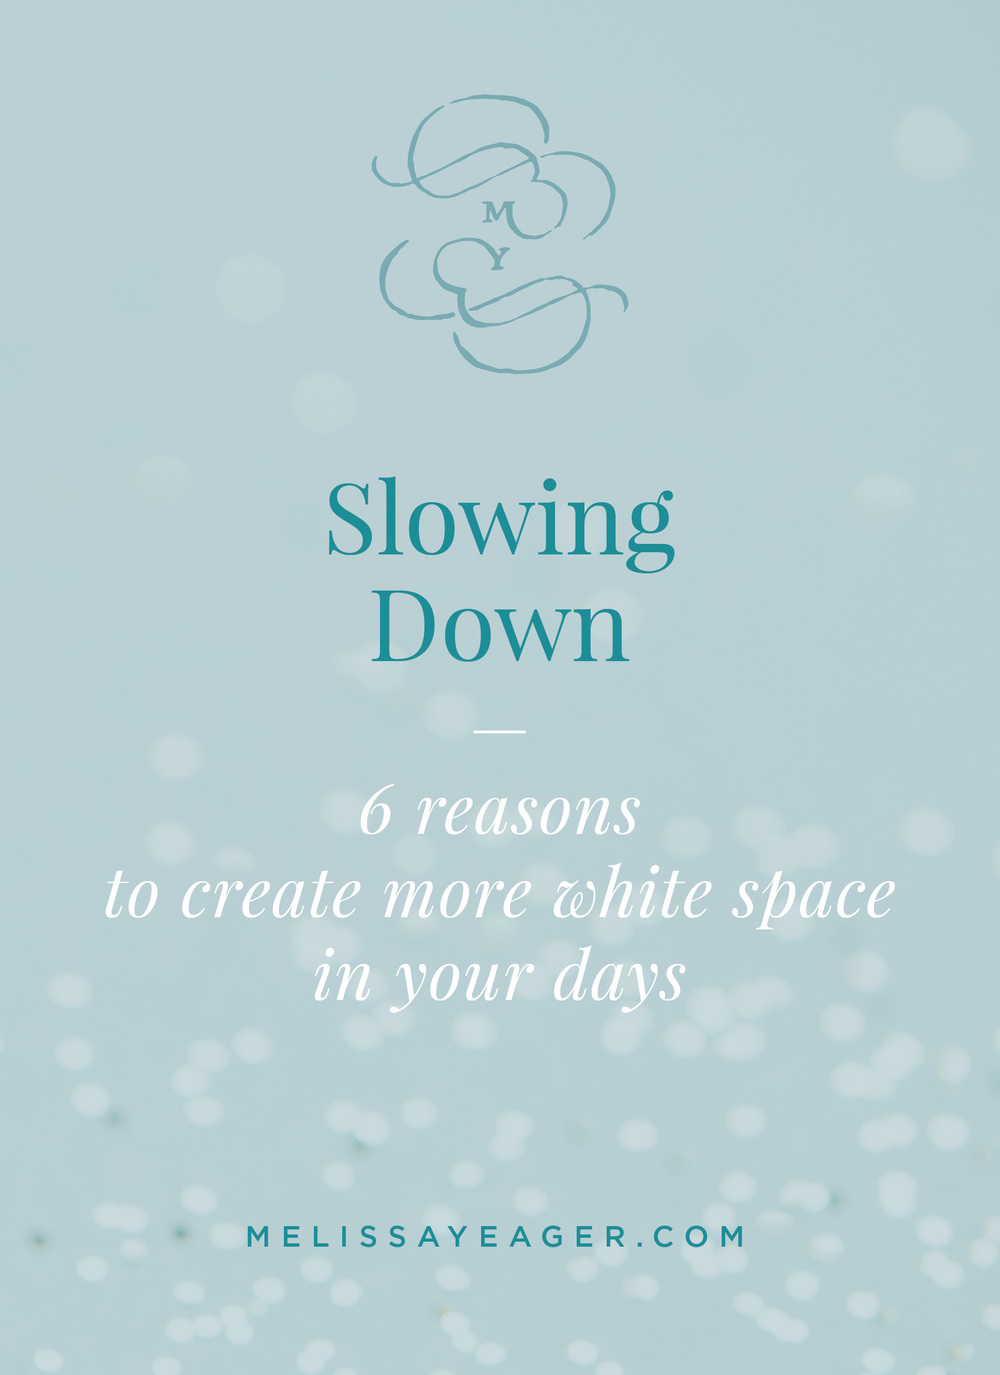 Slowing Down - 6 reasons to create more white space in your days